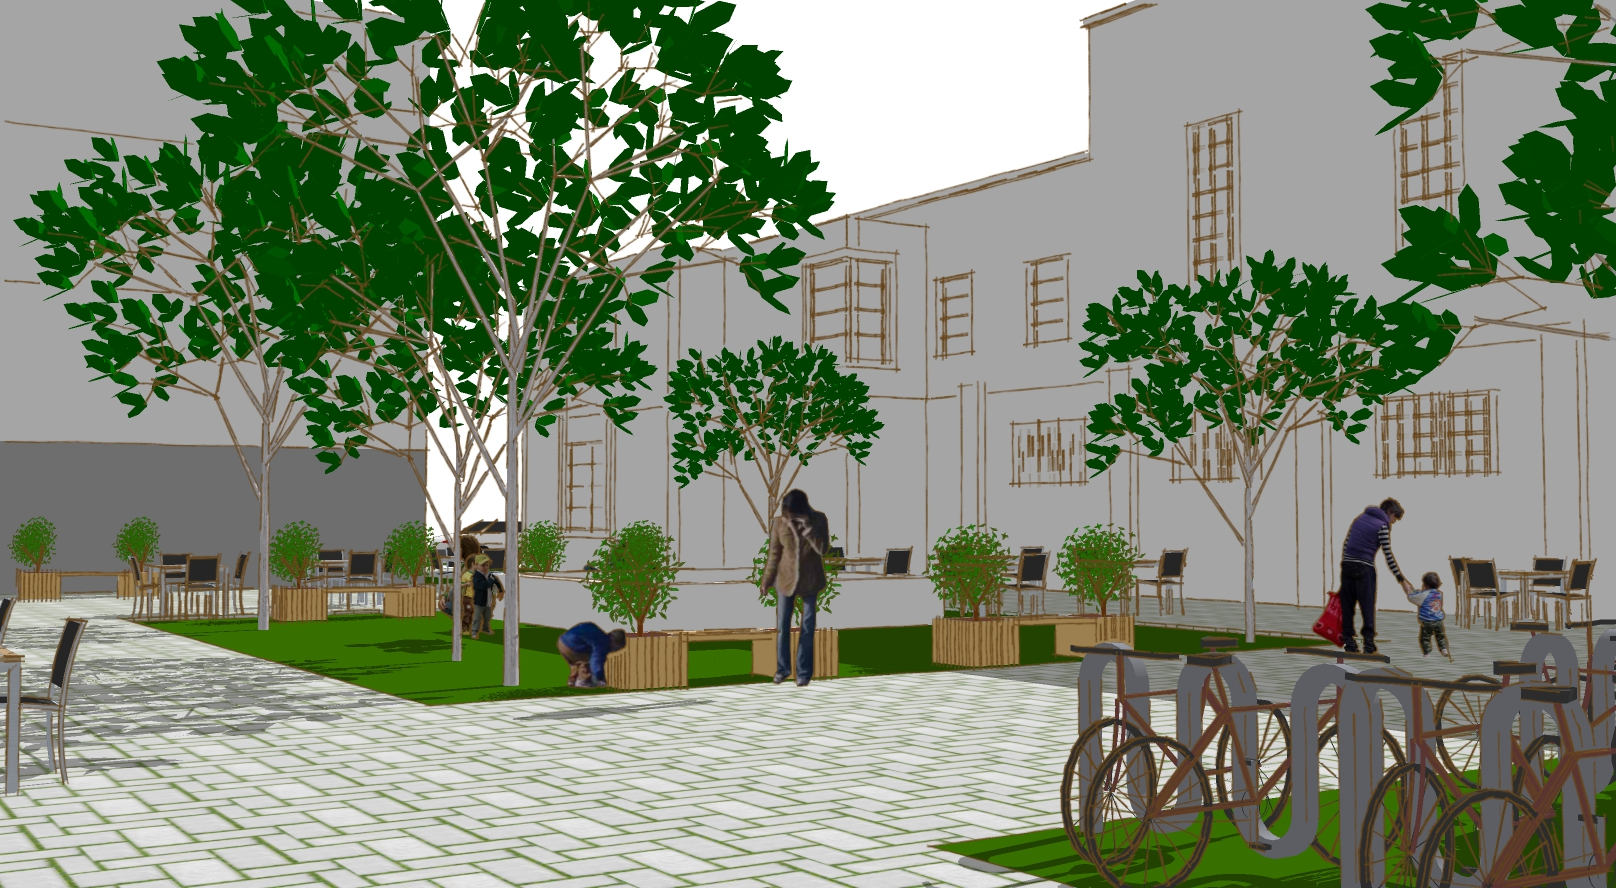 Conceptual rendering of the public plaza with the Masonic Lodge in the background.